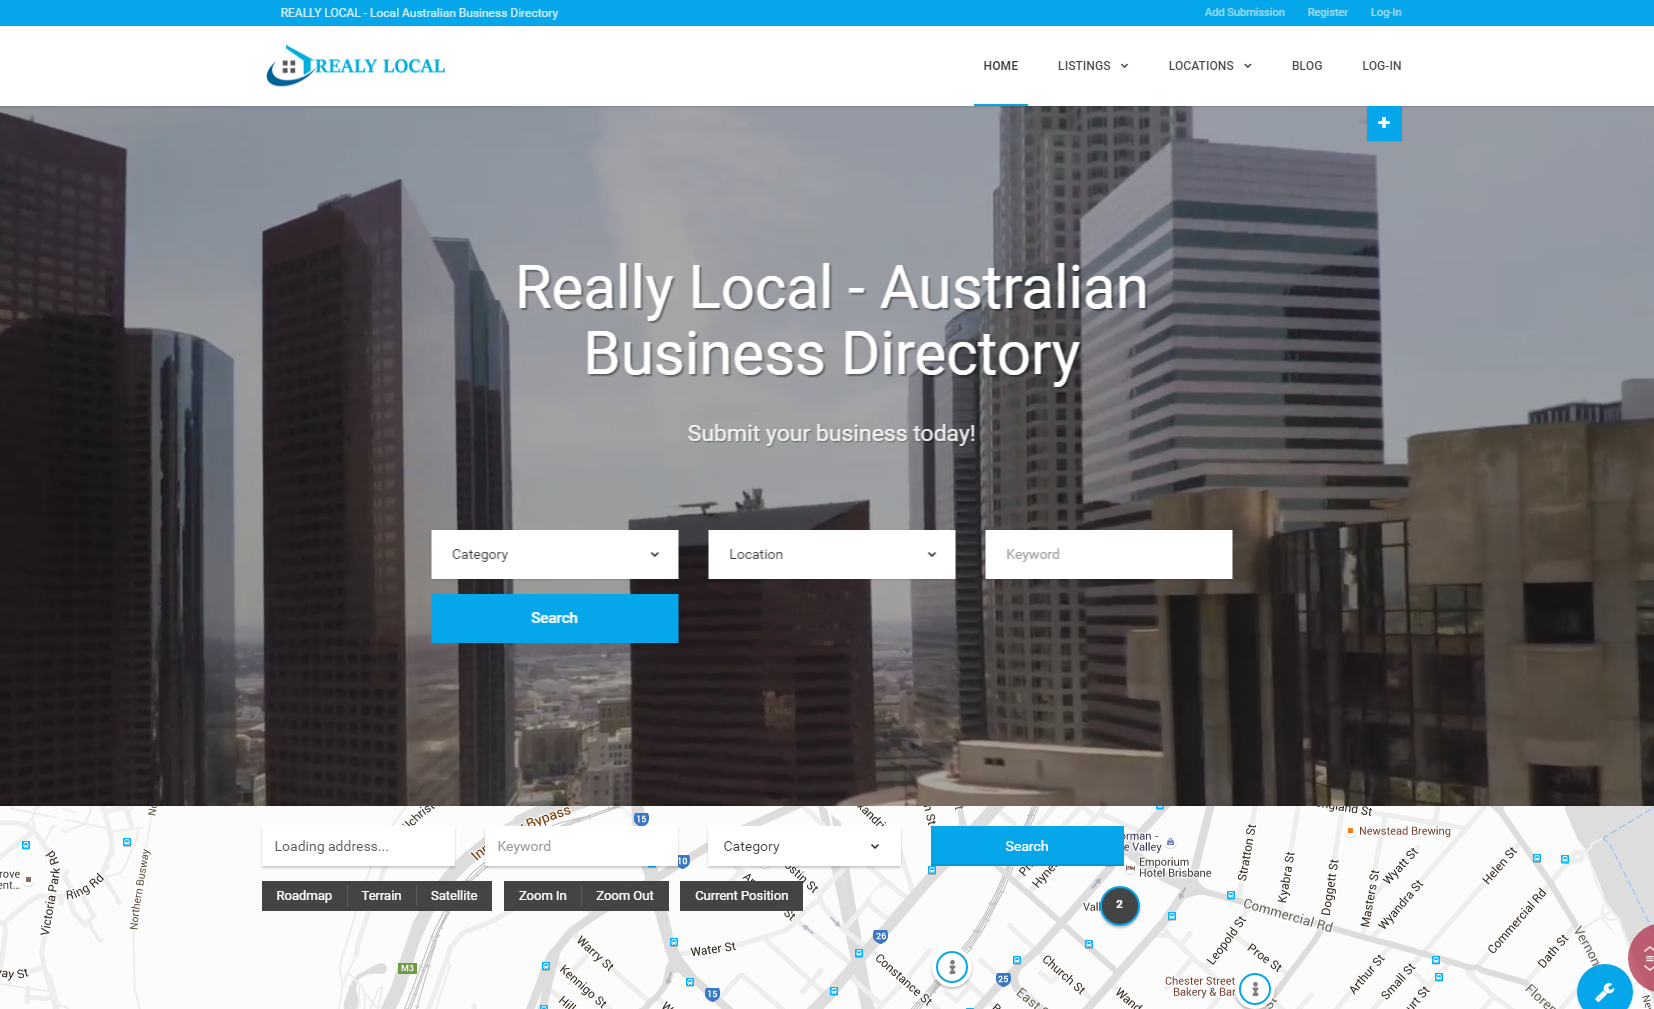 Australian Business Directory Submission